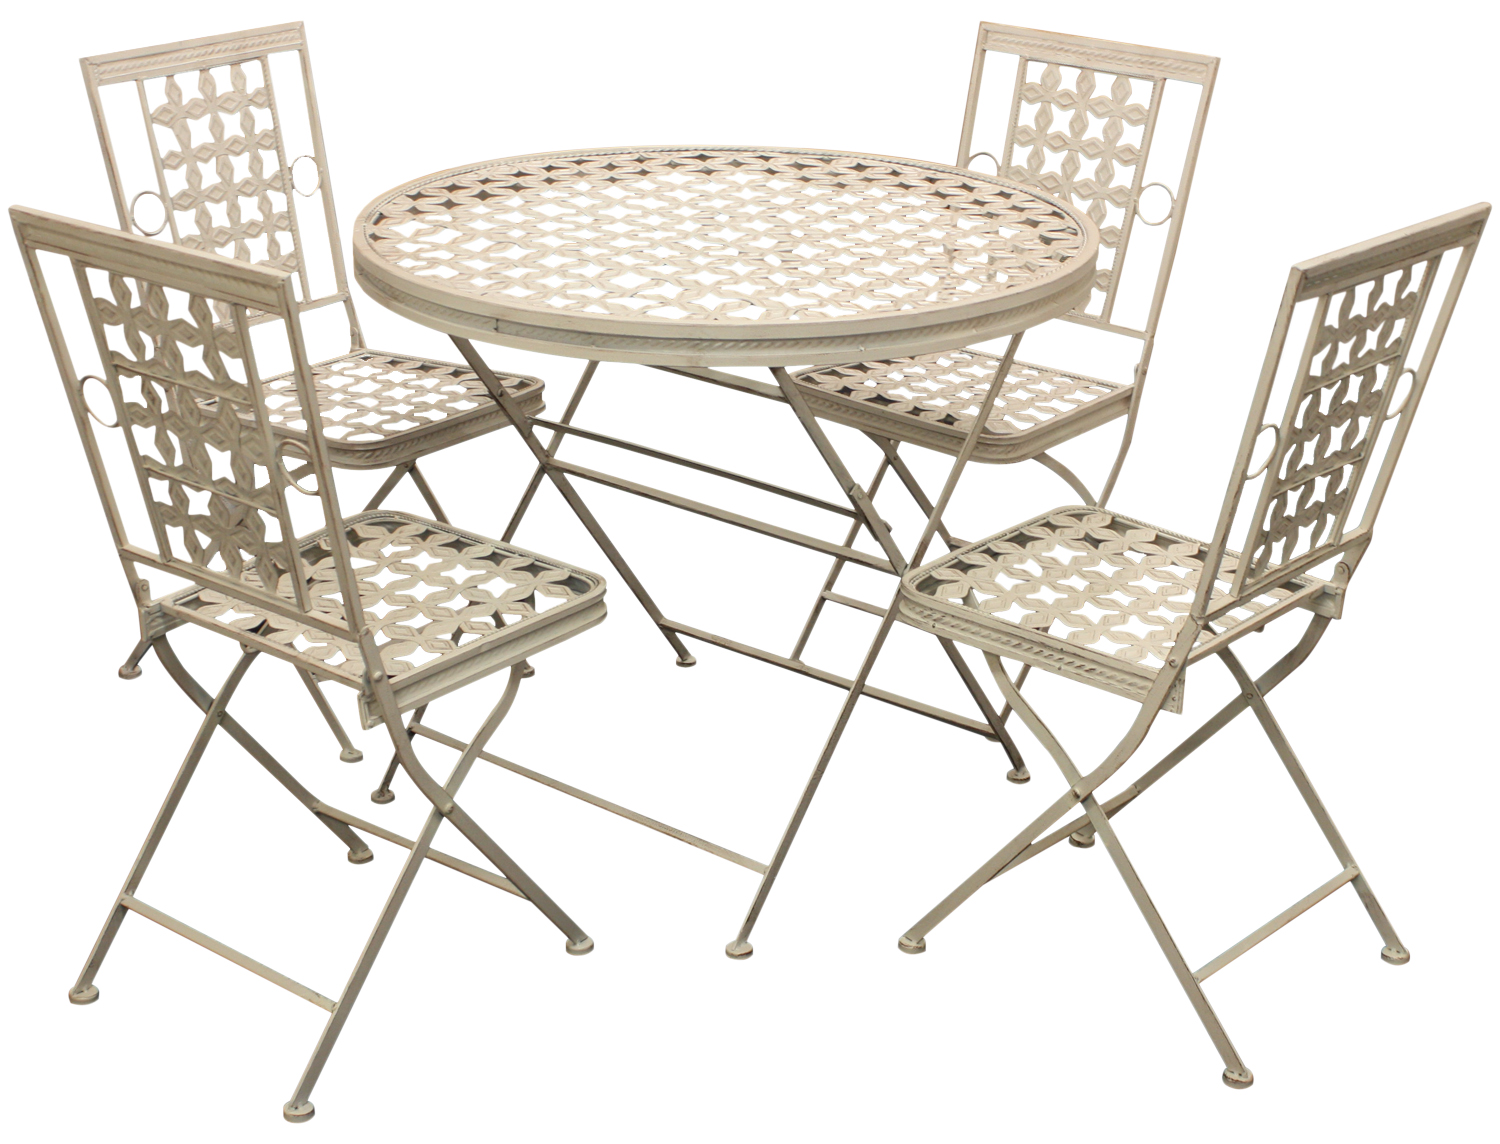 metal chairs and table chair rail molding ideas woodside folding outdoor garden patio dining